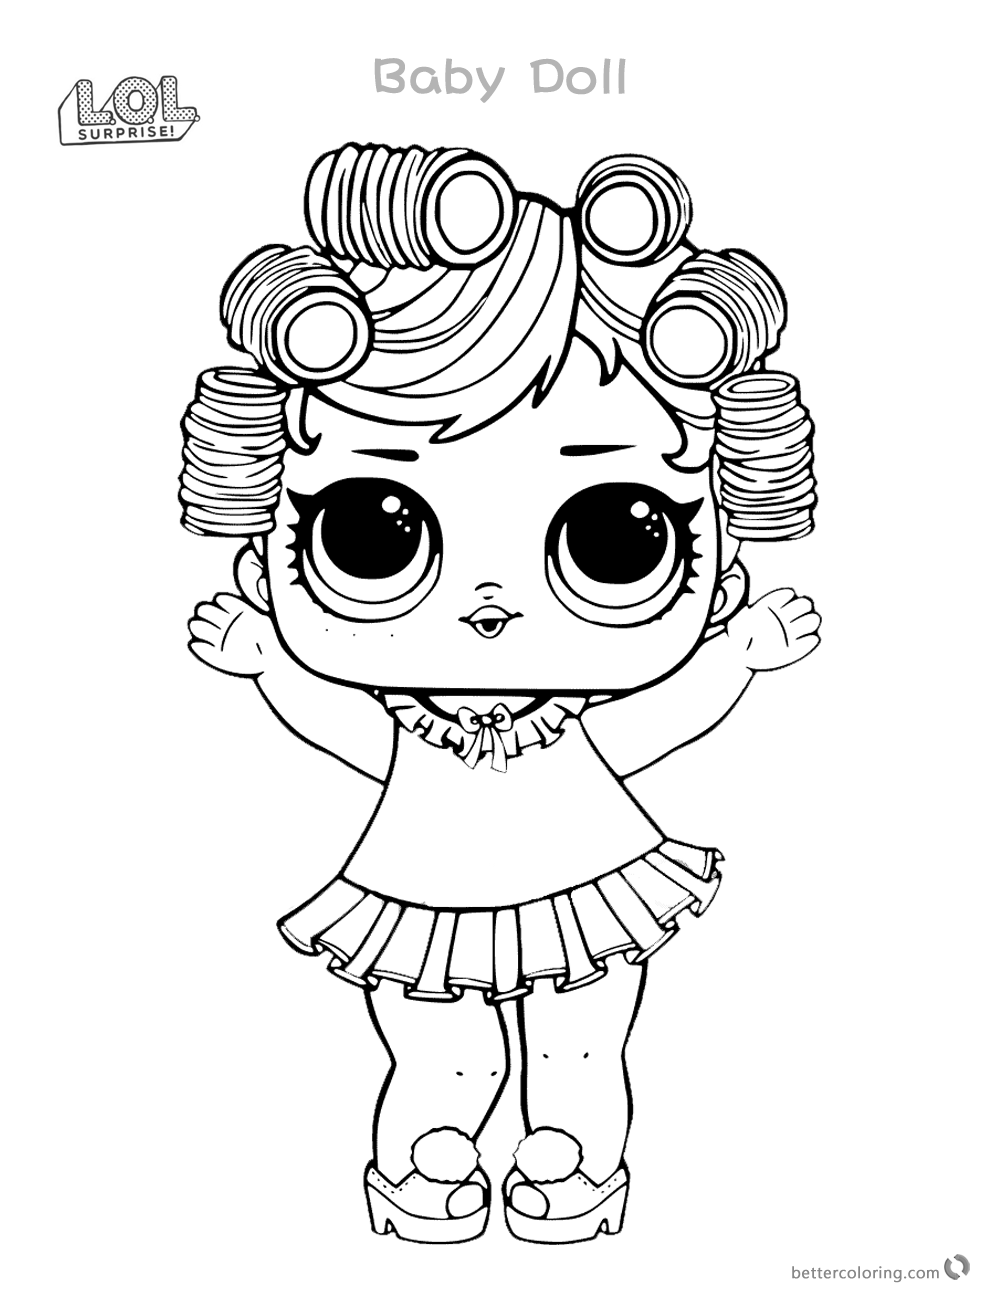 Babydoll From LOL Surprise Doll Coloring Pages Printable